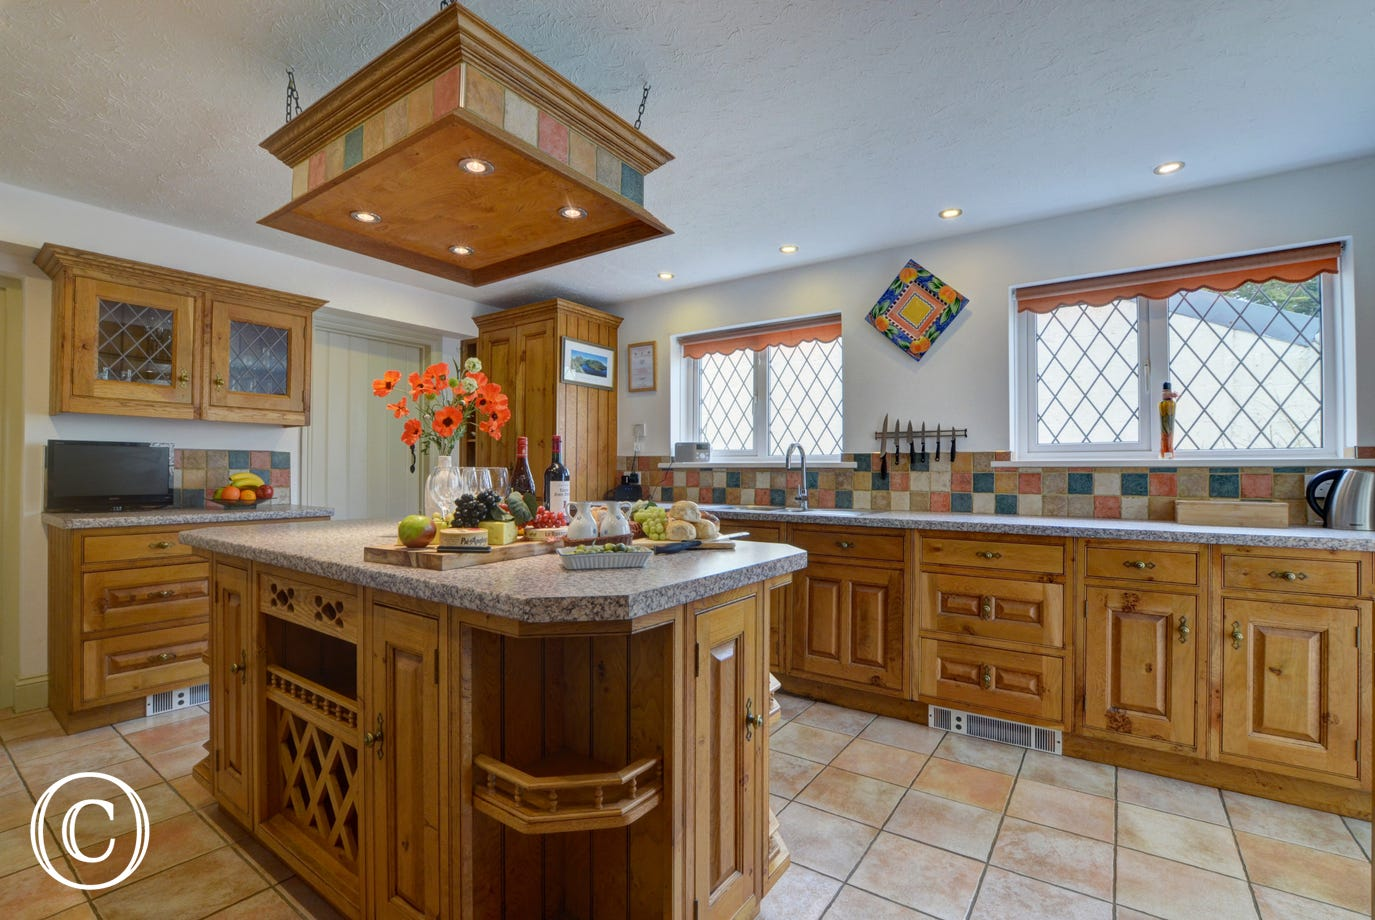 The large country style kitchen